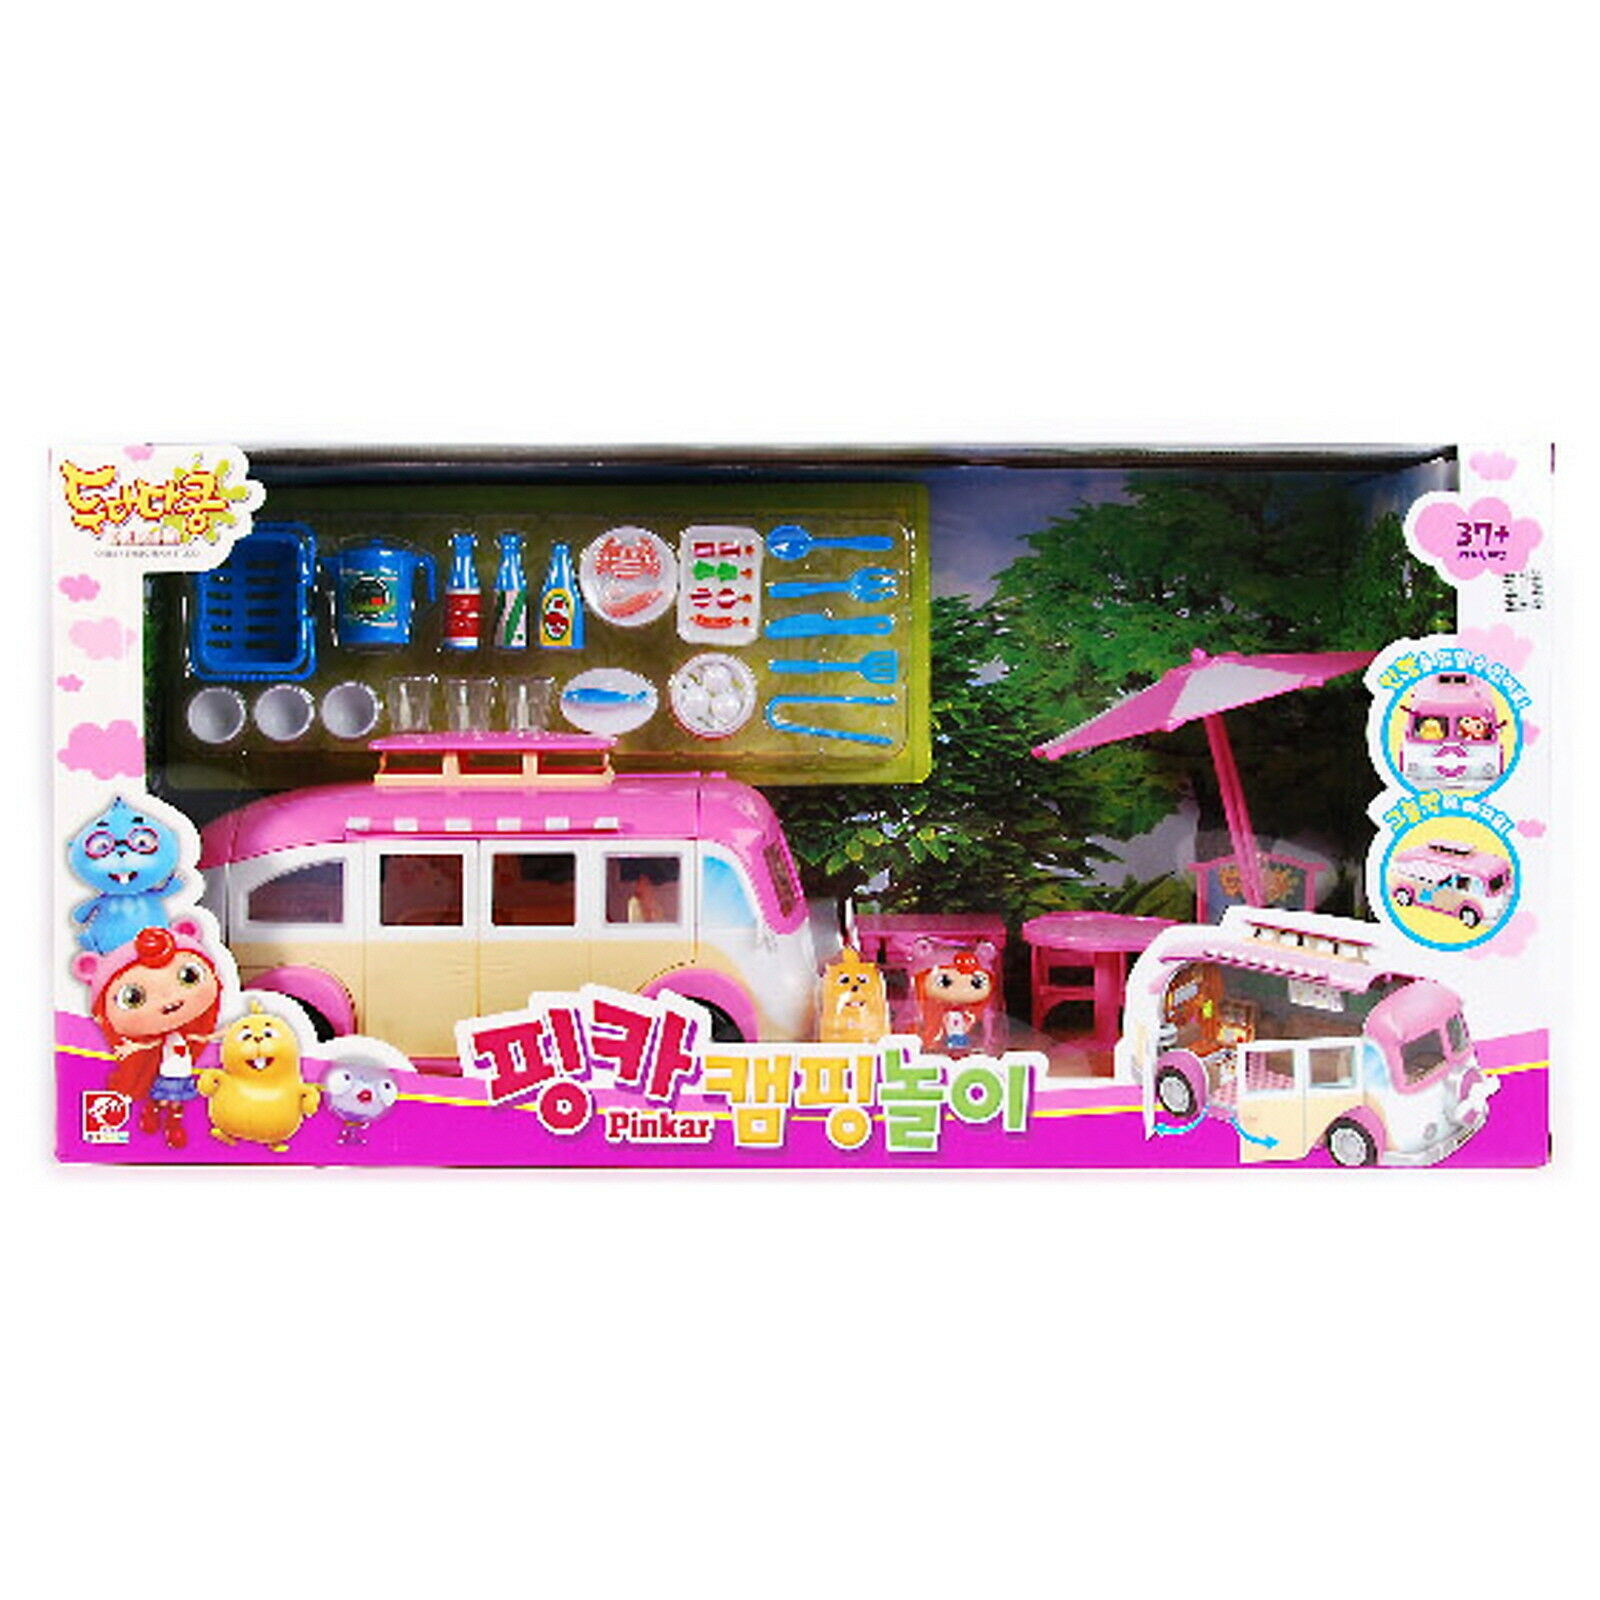 Doodadakong RosaAR CAMPING CAR PLAY SET kids toy Caravan Korean Animation Rosa